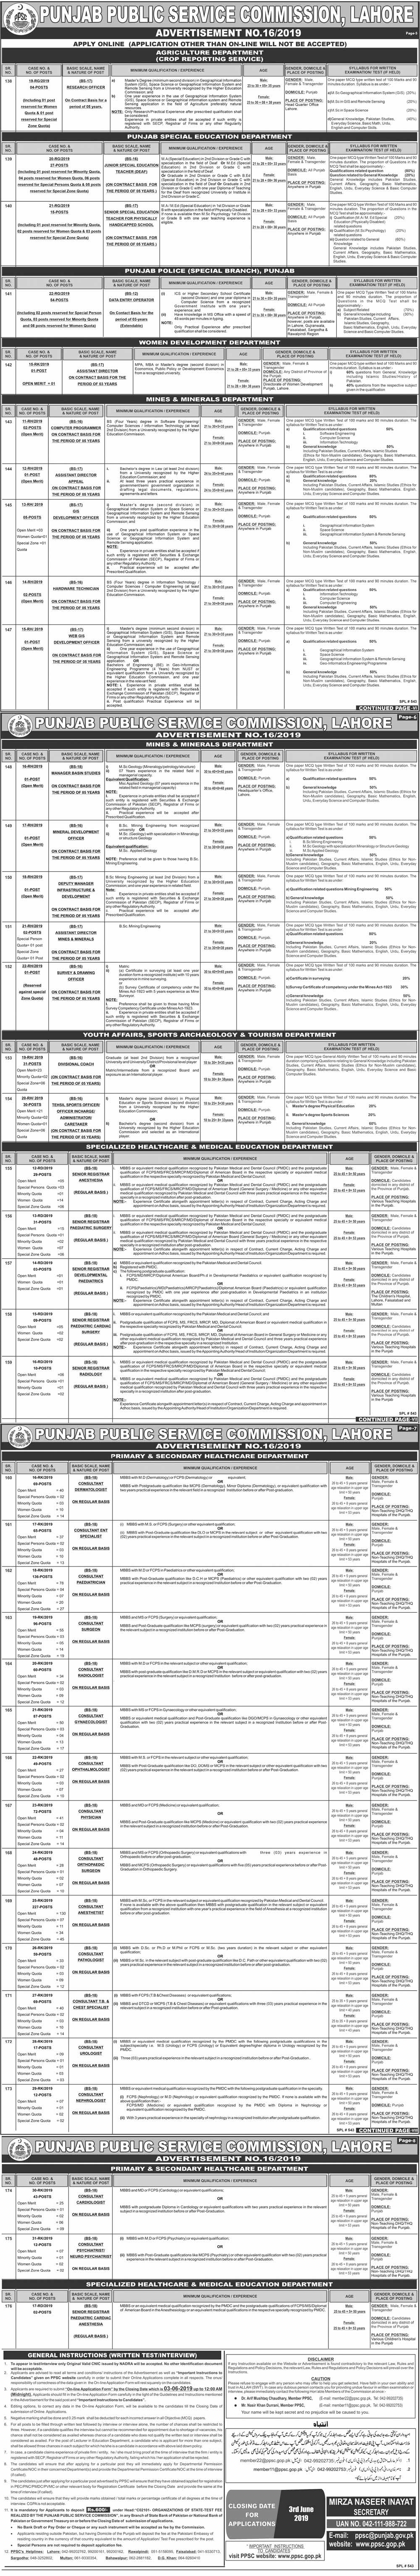 Get a Latest Jobs In Public Service Commission 2019